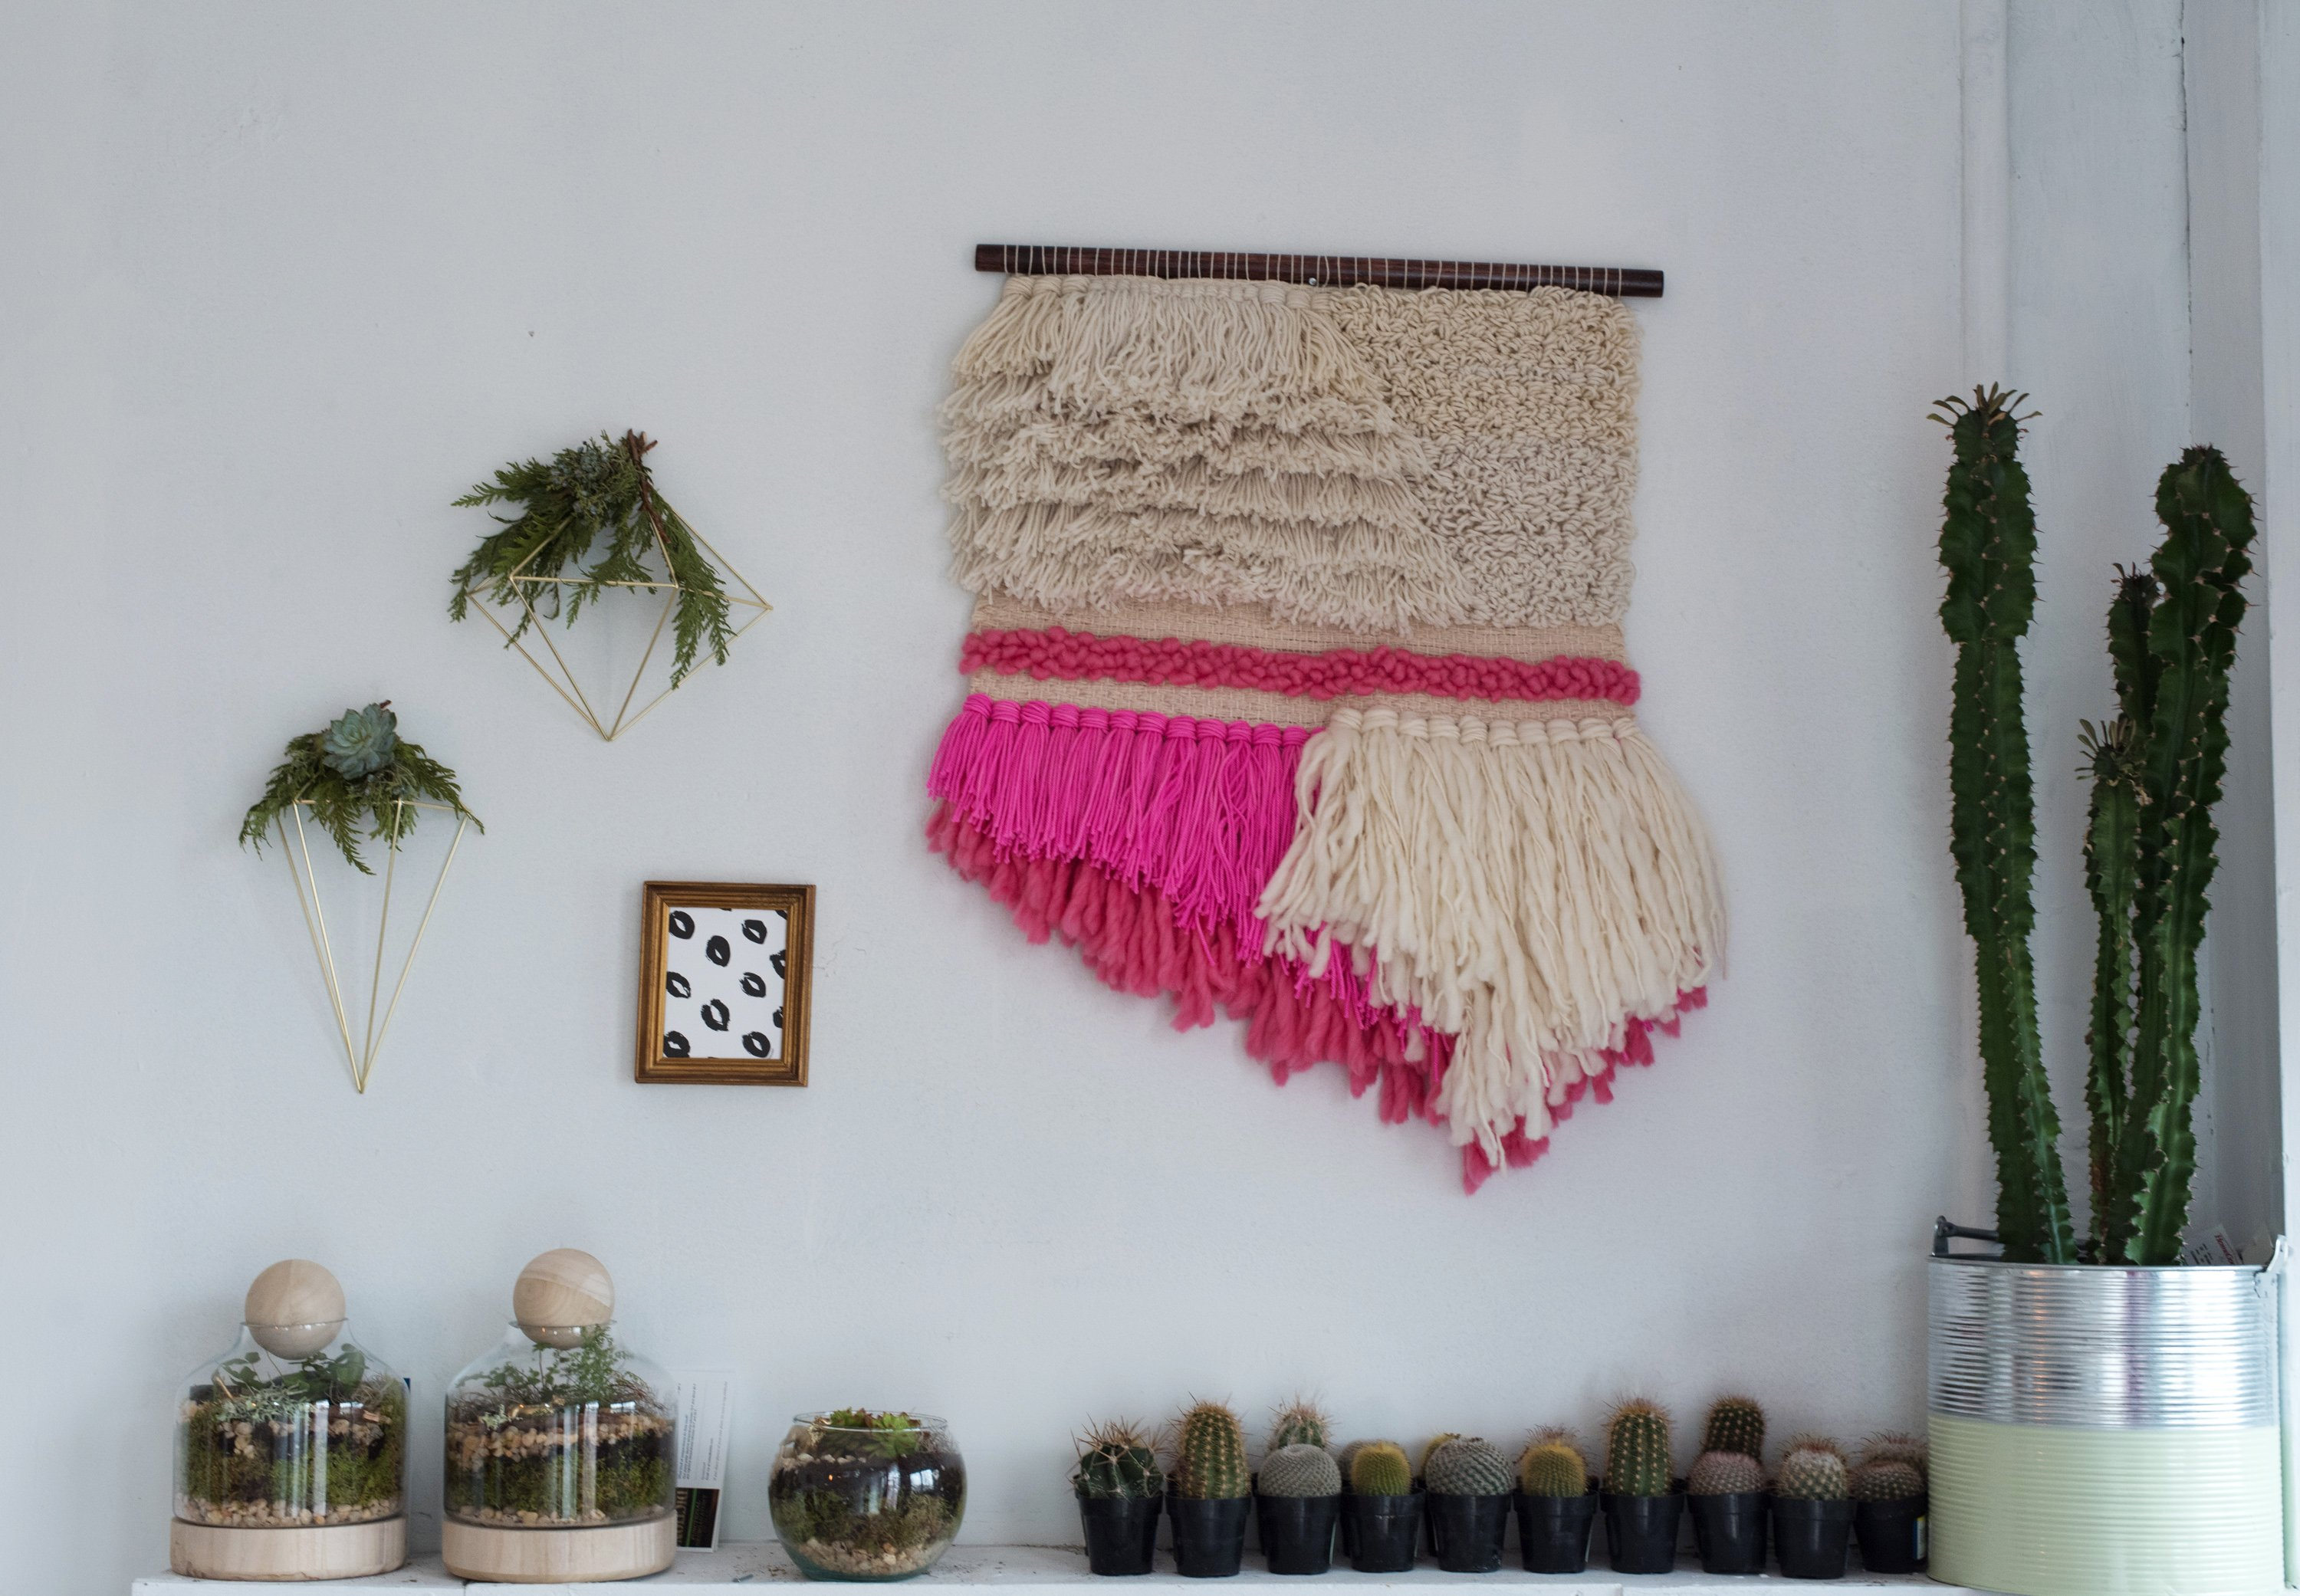 A Linny wall hanging adds a bolt of color above Simmons' cactus collection.